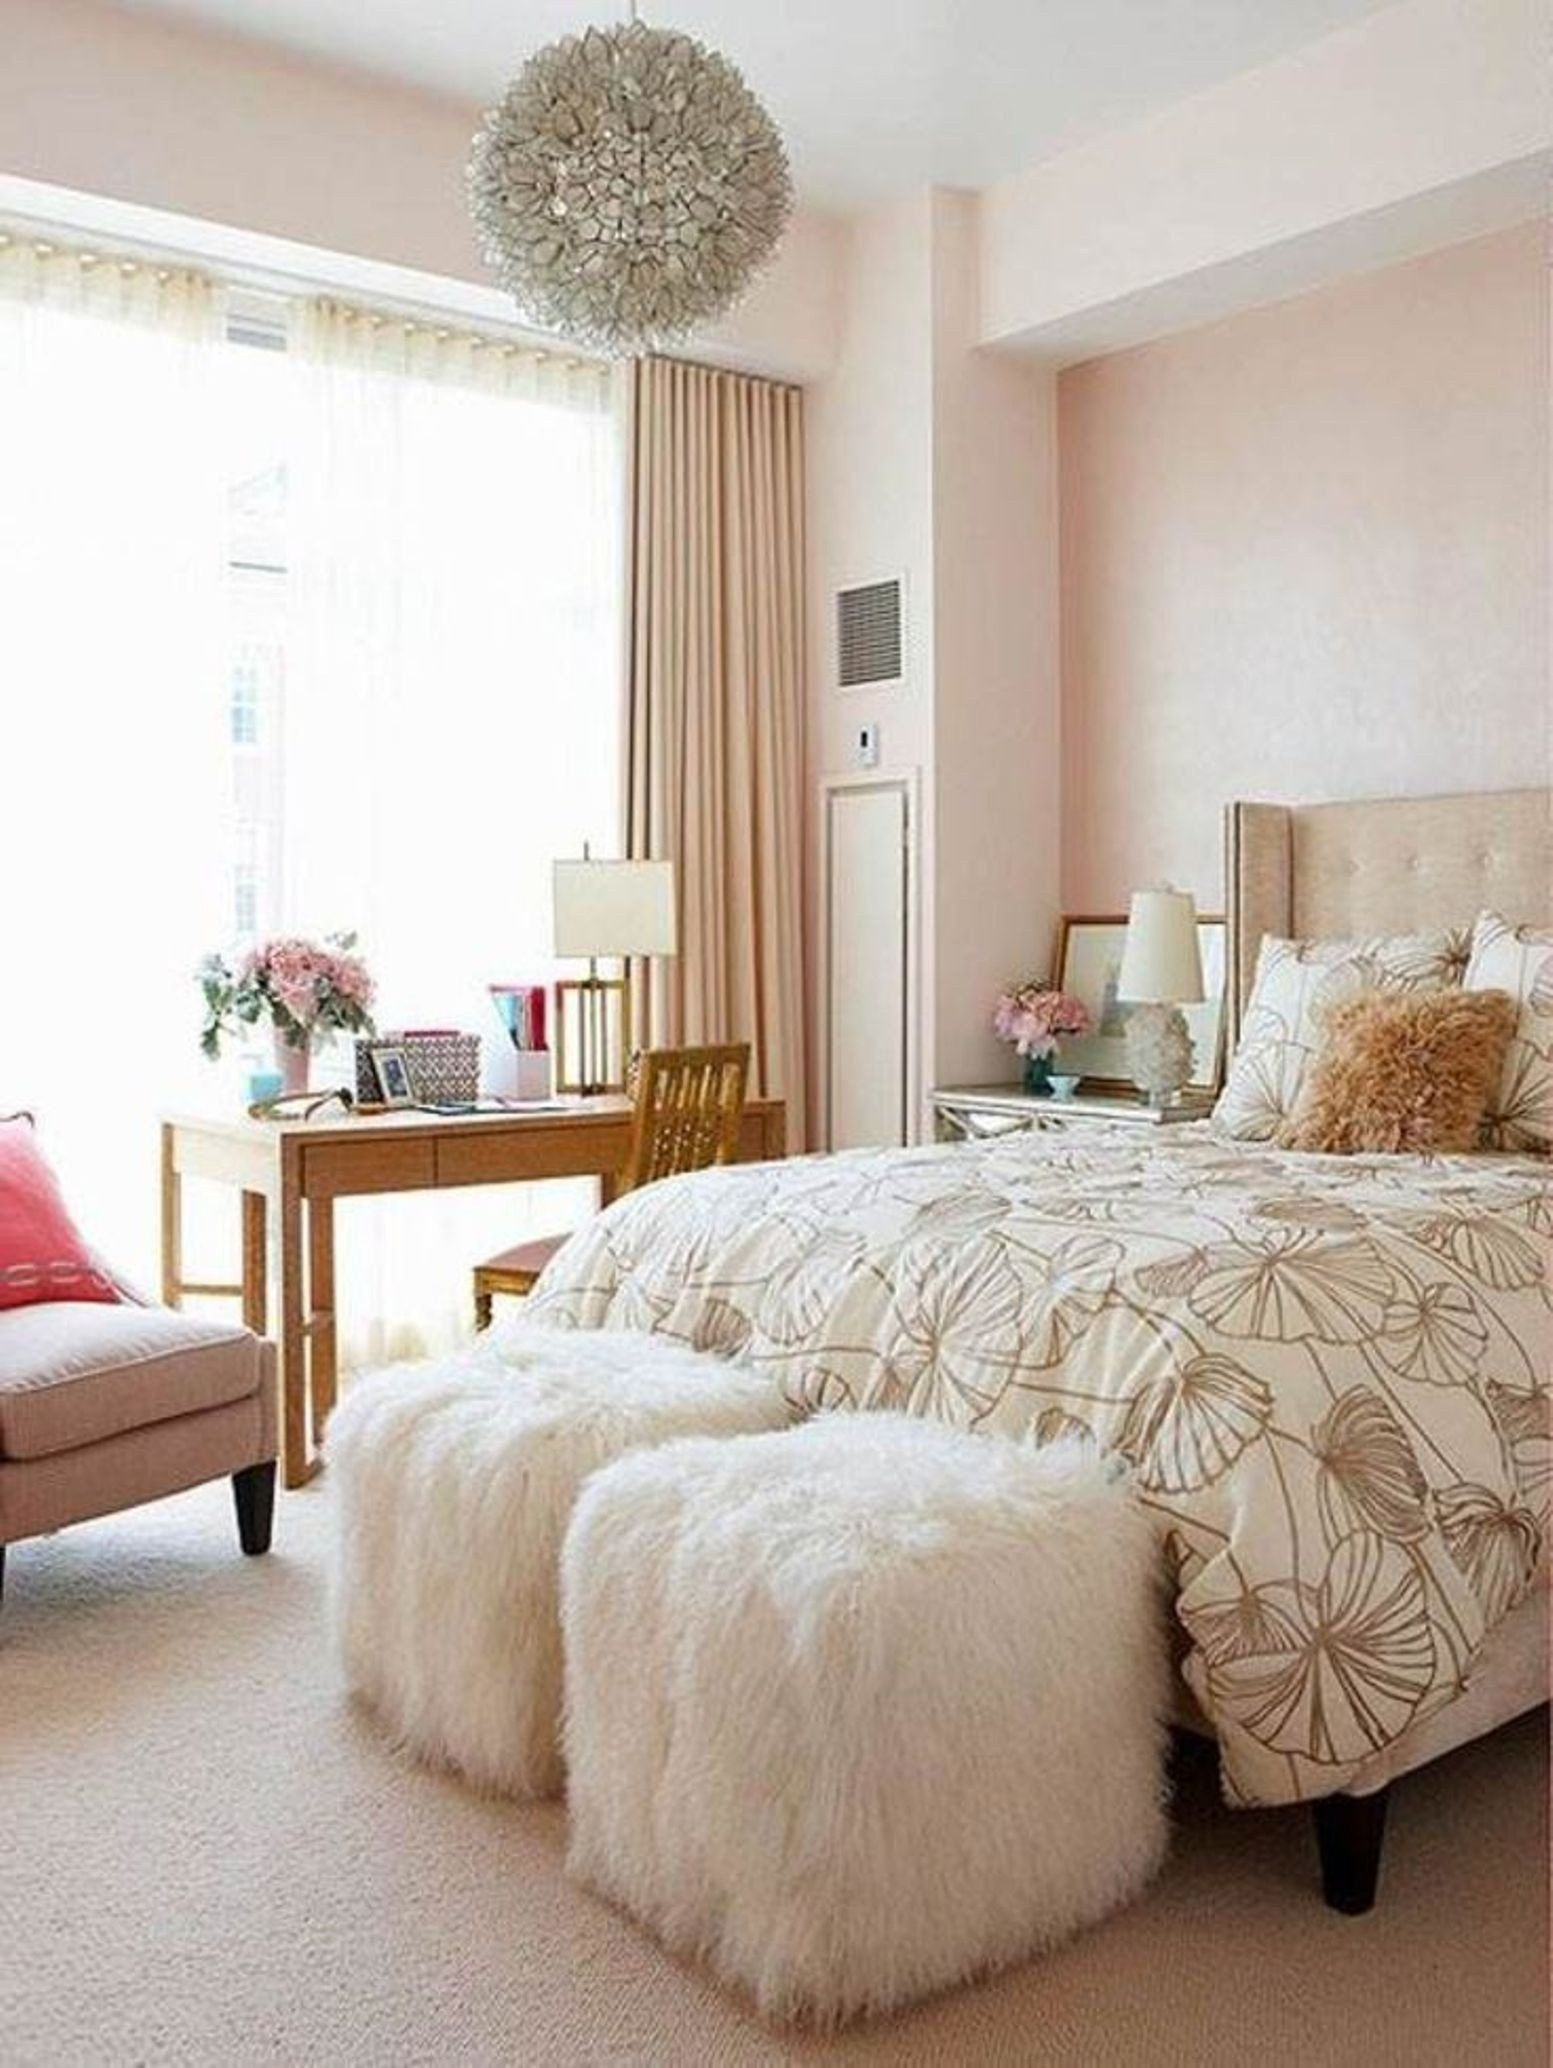 Bedroom before and after Lovely Gray Bedroom Decorating Ideas Elegant Bedroom Cool Gray